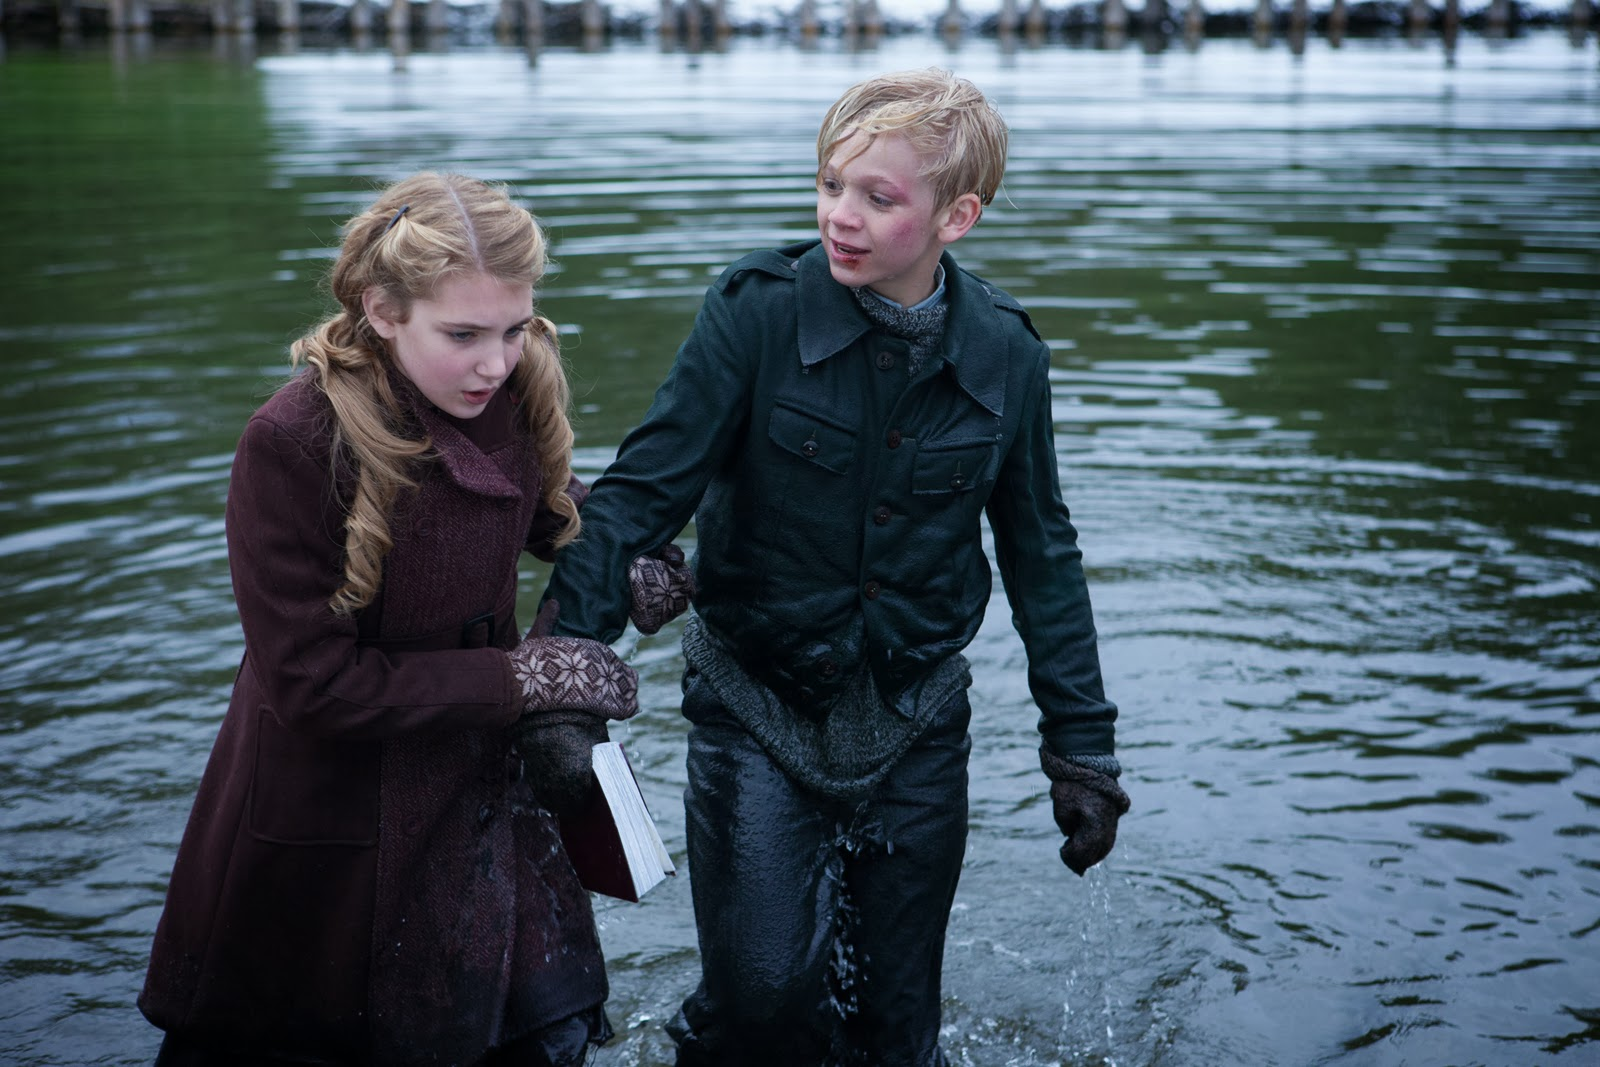 main characters of the book thief film vs book the book thief book  image sophie nelisse and nico liersch the book thief jpg file sophie nelisse and nico liersch